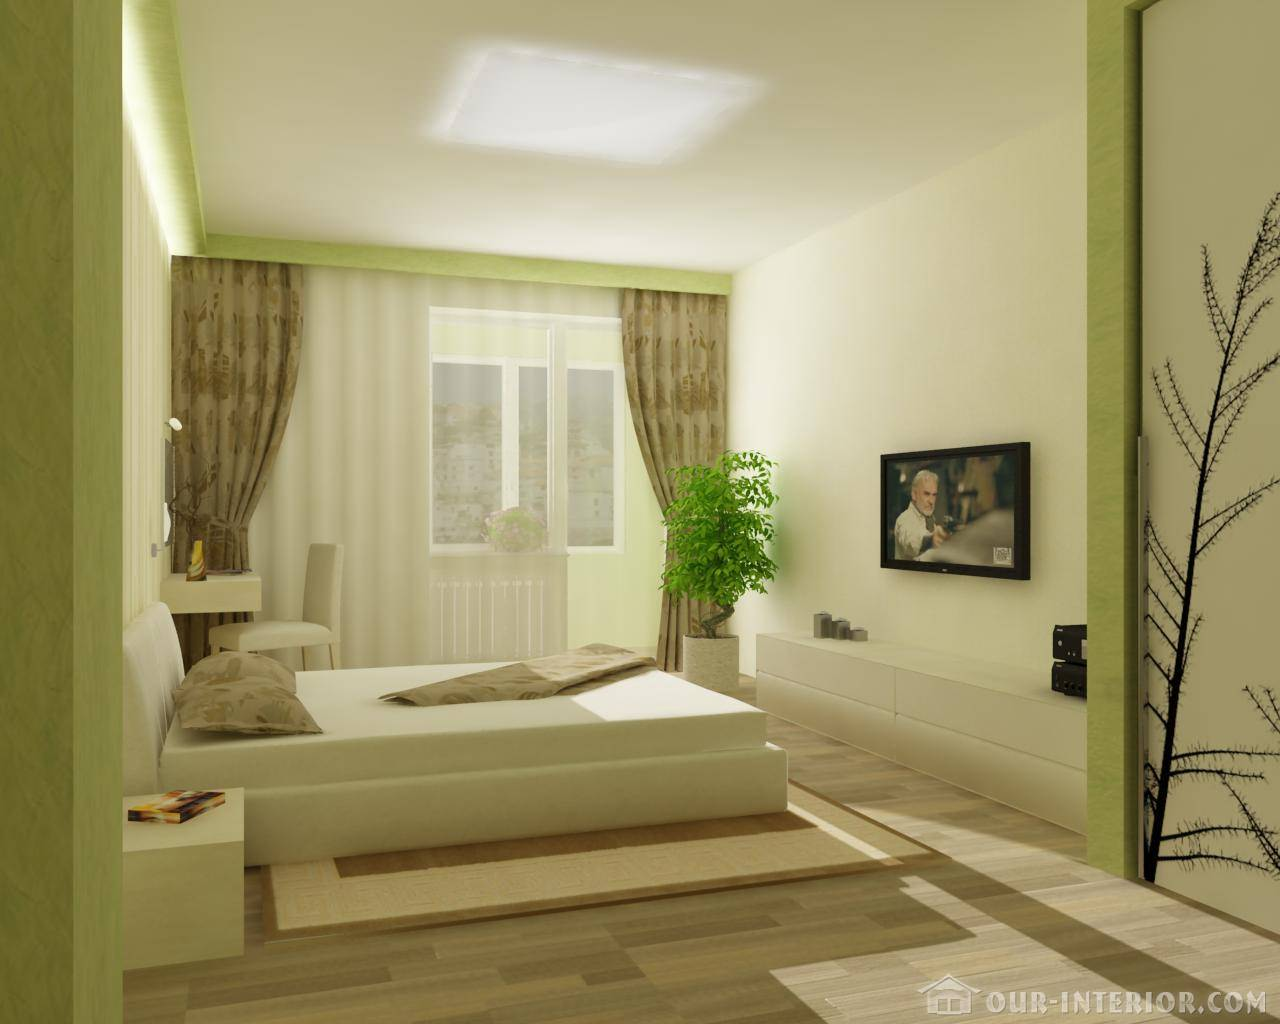 Our for Bedroom interior designs green